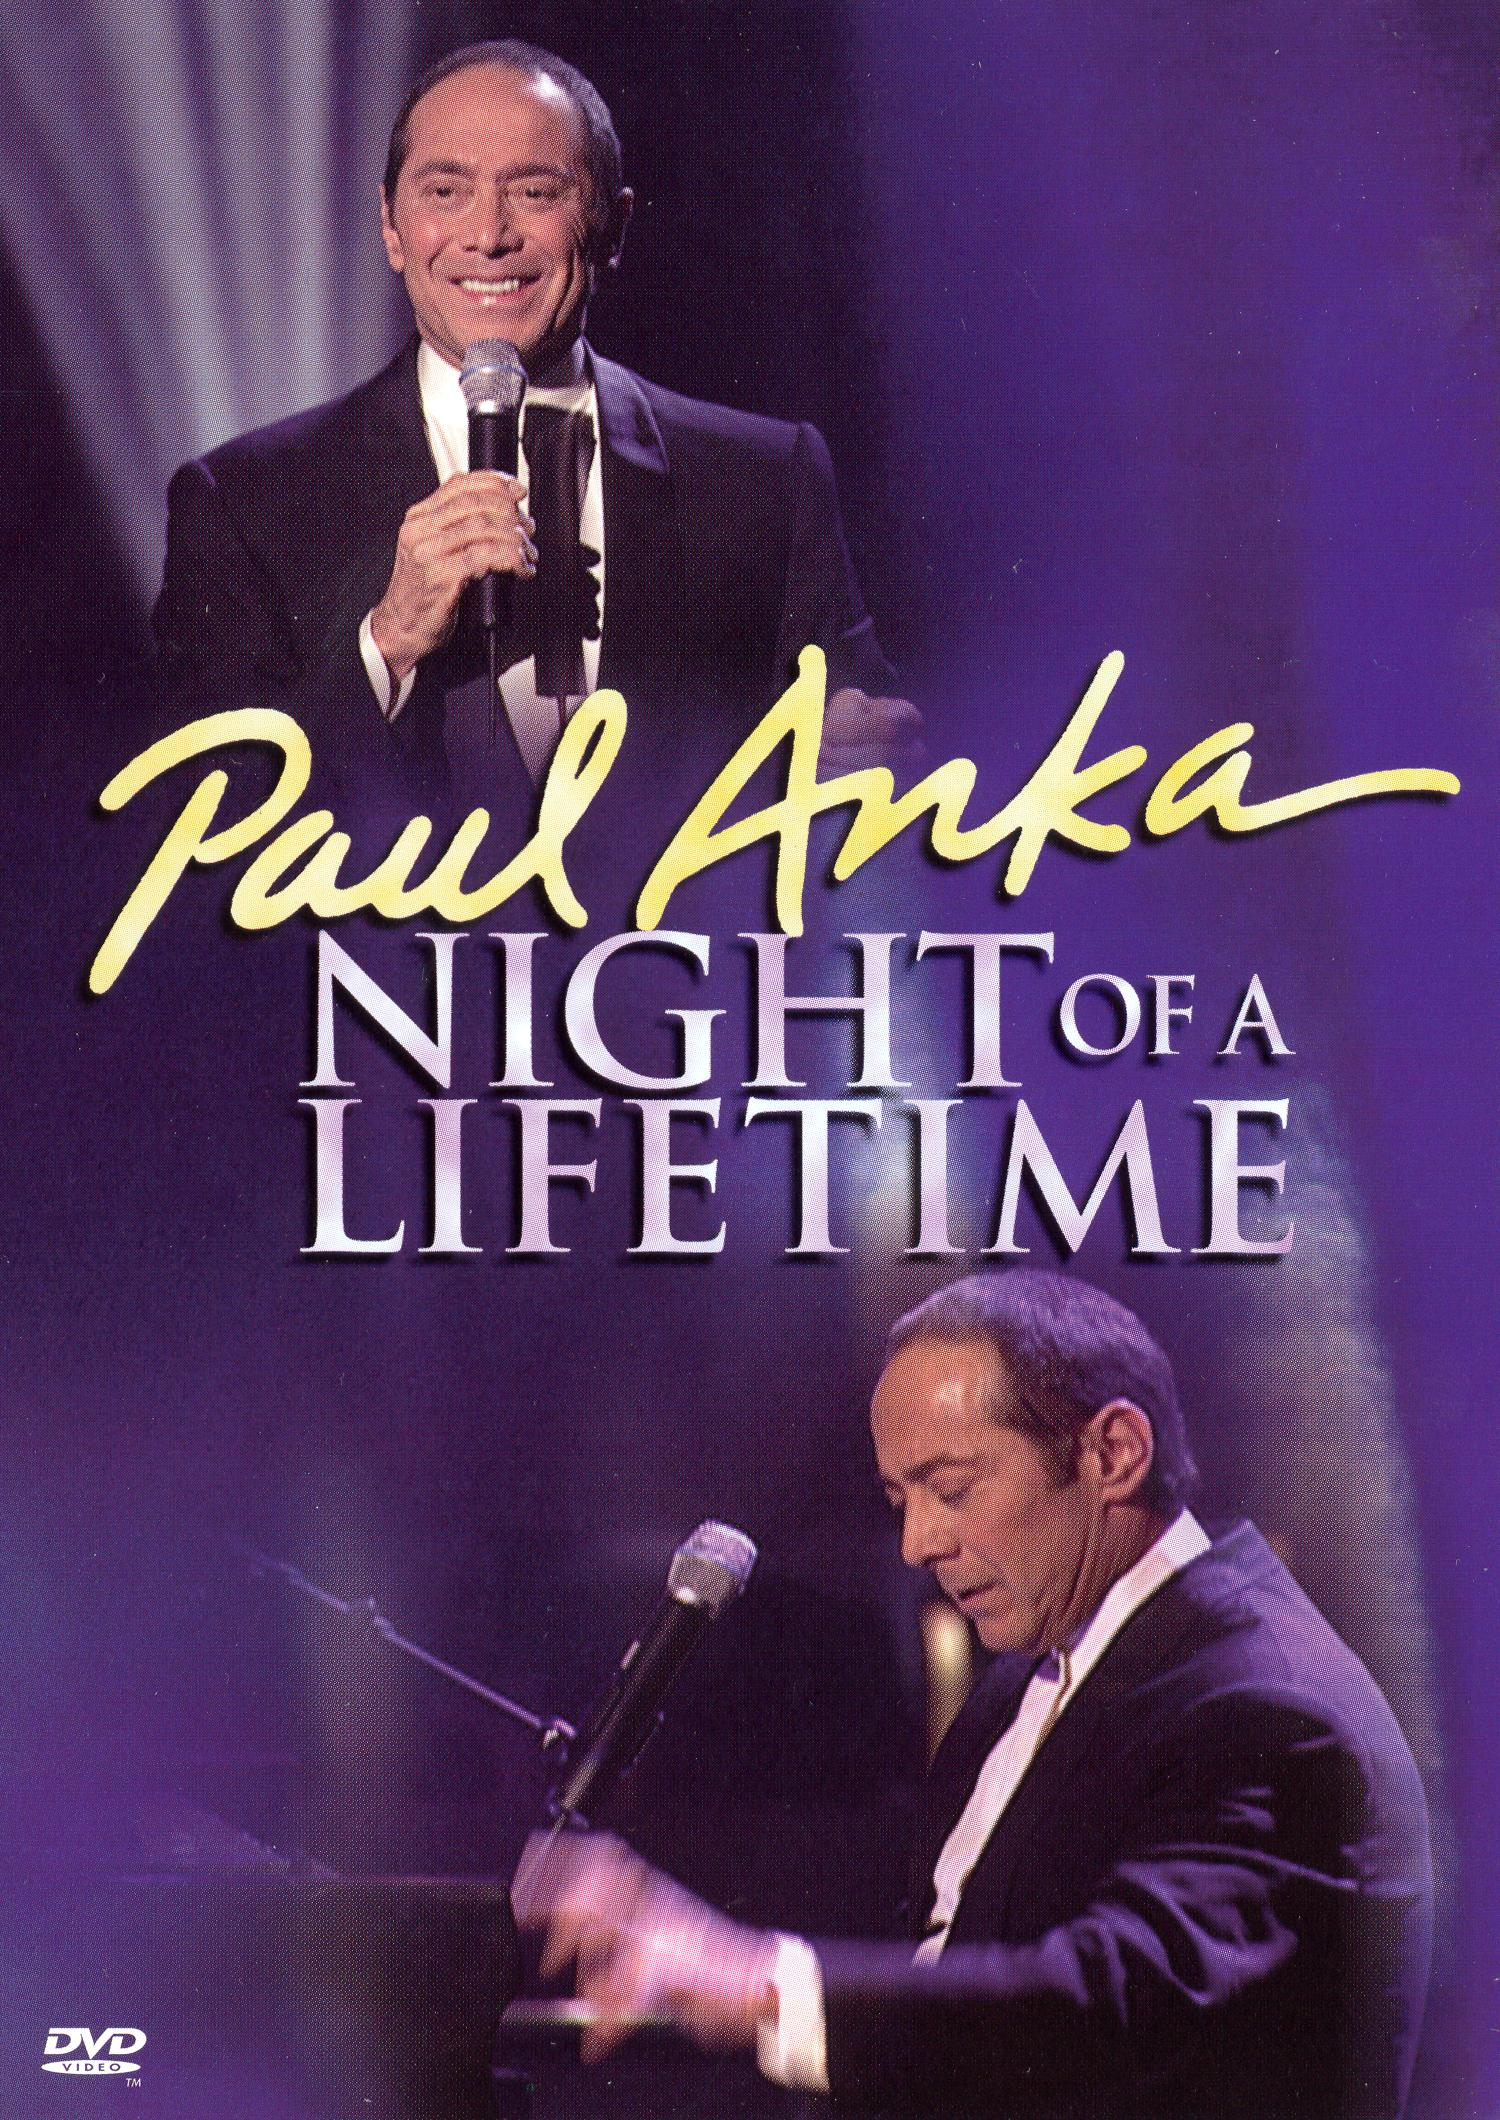 Paul Anka: Night of a Lifetime